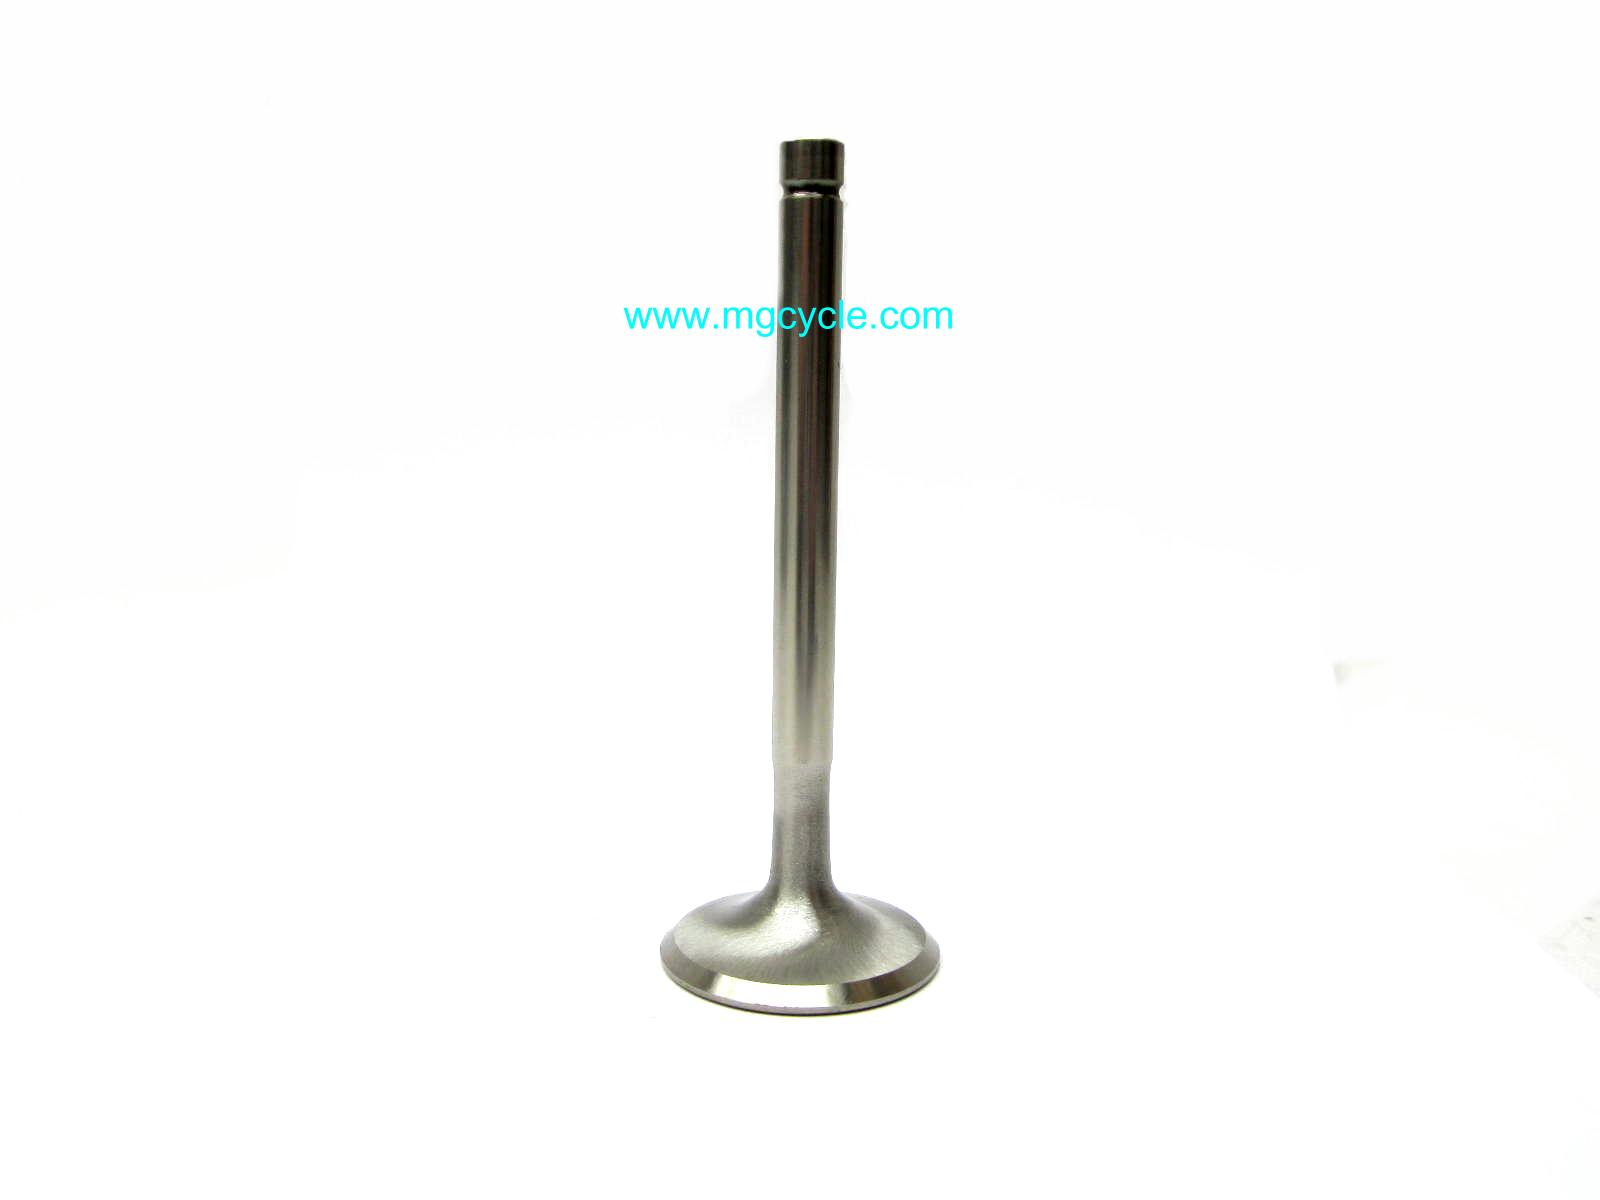 exhaust valve 37mm for mid valve engines: LeMans 850 Cal2/3 SP3